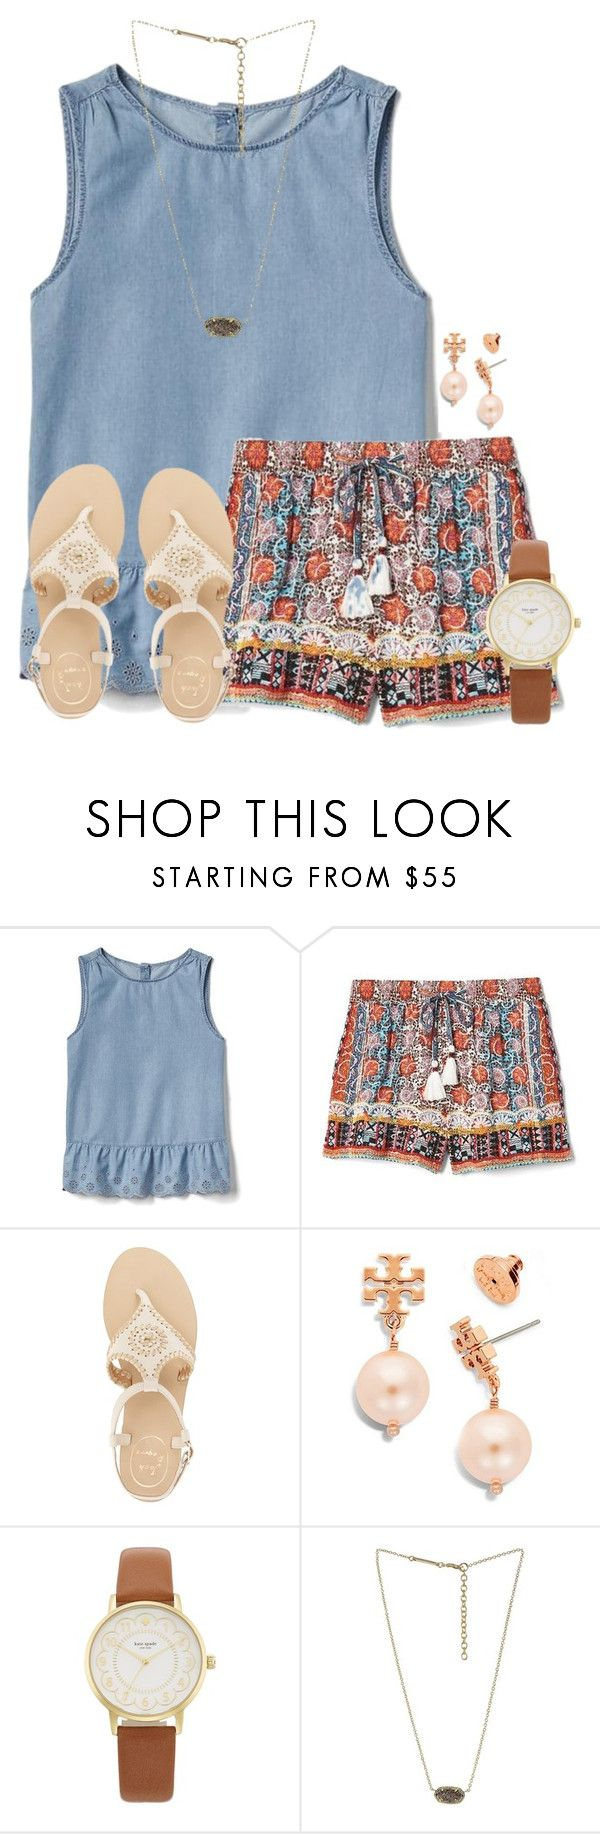 """When's y'alls last day of school "" by flroasburn ❤ liked on Polyvore featuring Gap, Jack Rogers, Tory Burch, Kate Spade and Kendra Scott"